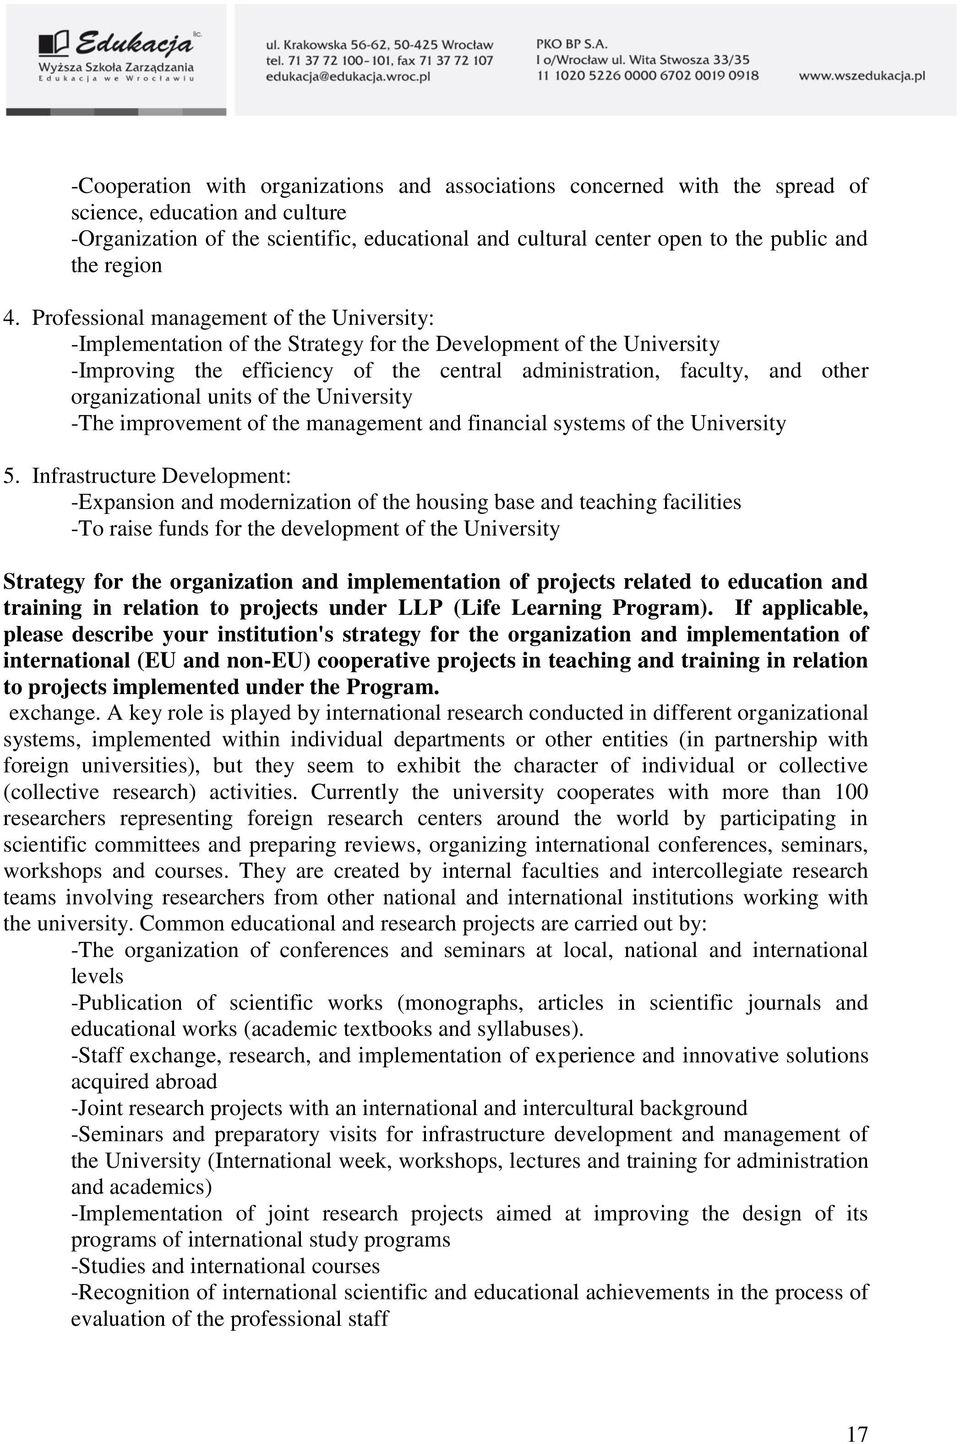 Professional management of the University: -Implementation of the Strategy for the Development of the University -Improving the efficiency of the central administration, faculty, and other